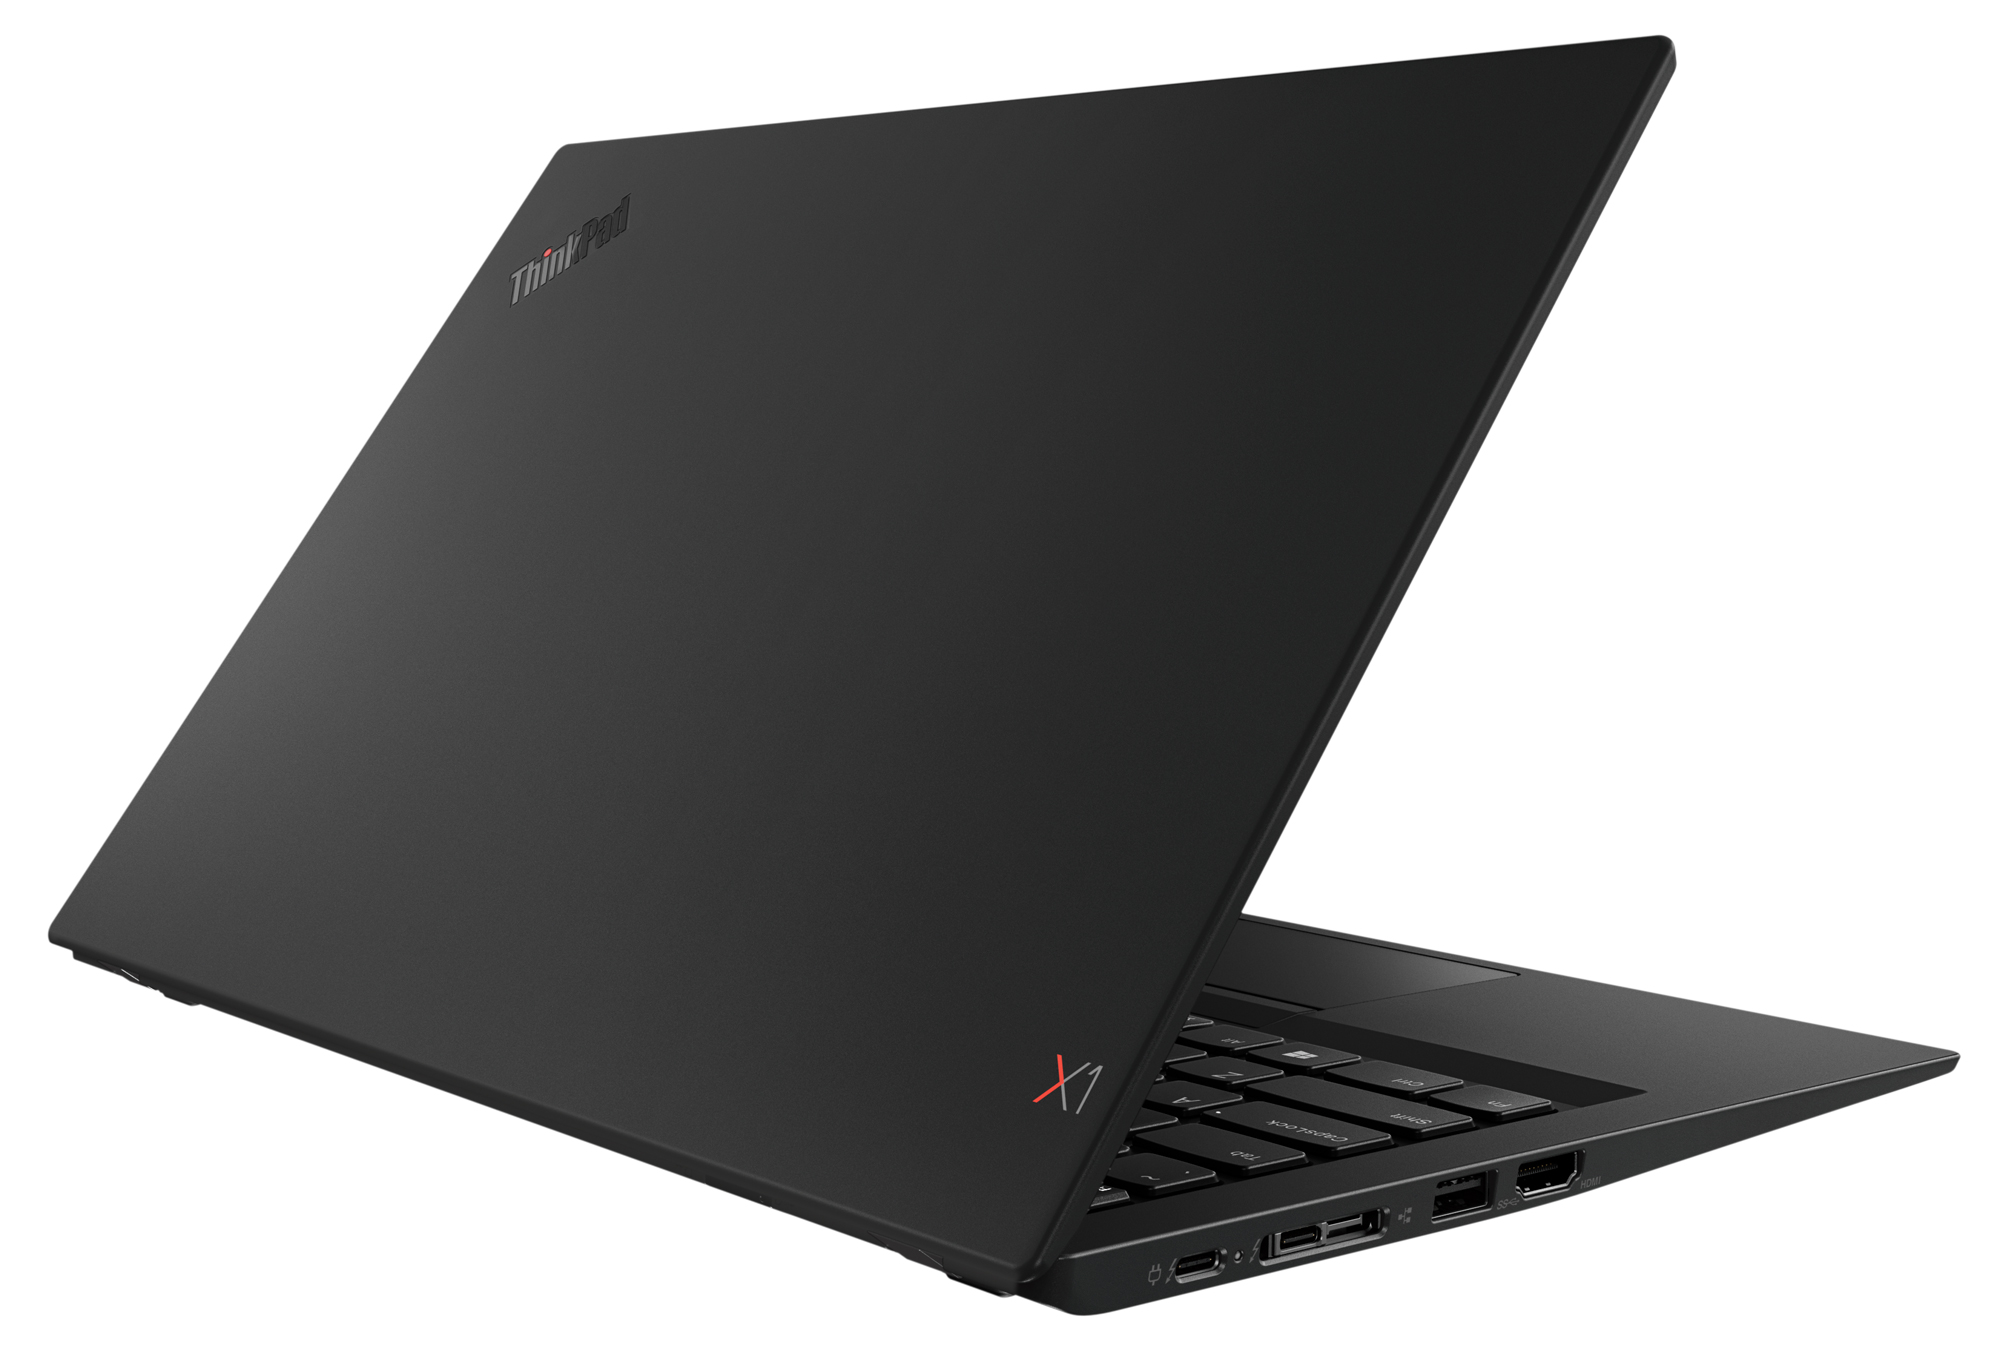 Фото  Ультрабук ThinkPad X1 Carbon 6th Gen (20KH006ERT)